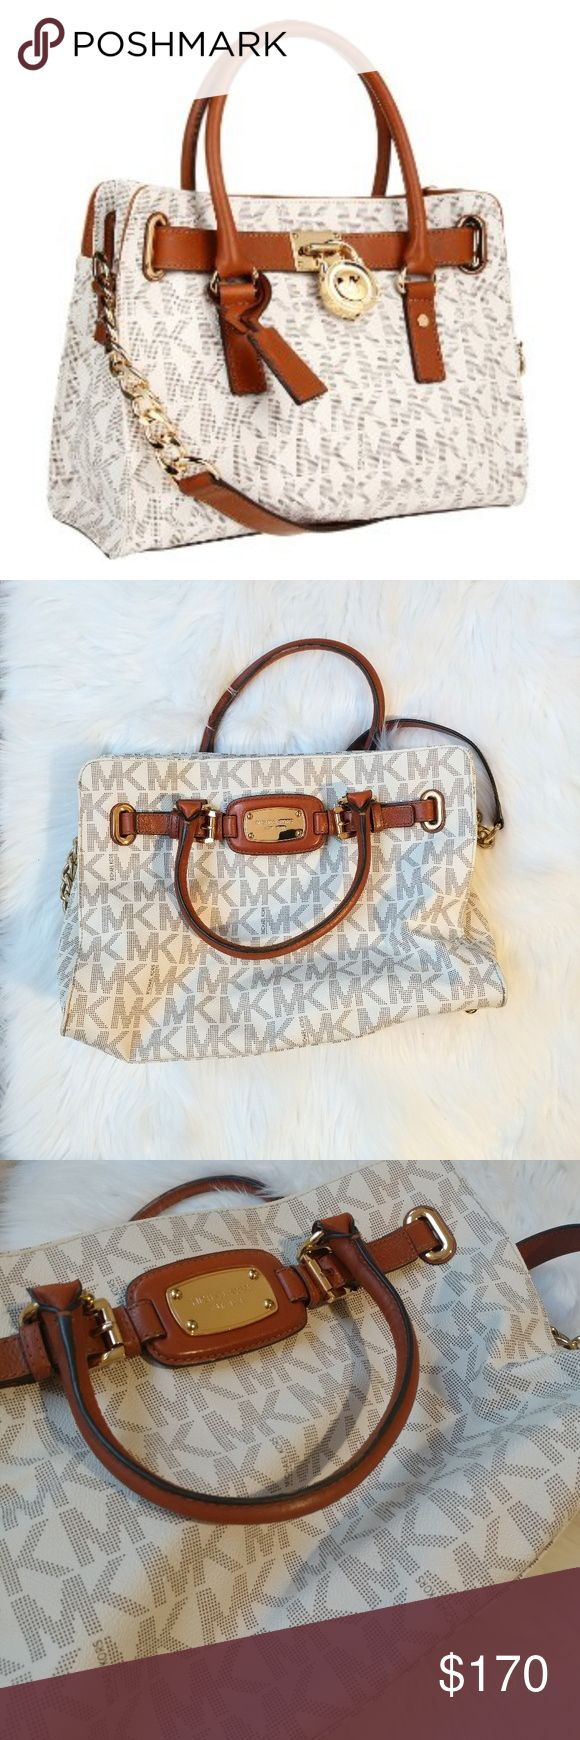 Michael Kors Hamilton bag Cream shoulder bag. Condition: very good. I have this bag for a year but I don't use it so often.  Size: 14.5x10x6 Michael Kors Bags Shoulder Bags